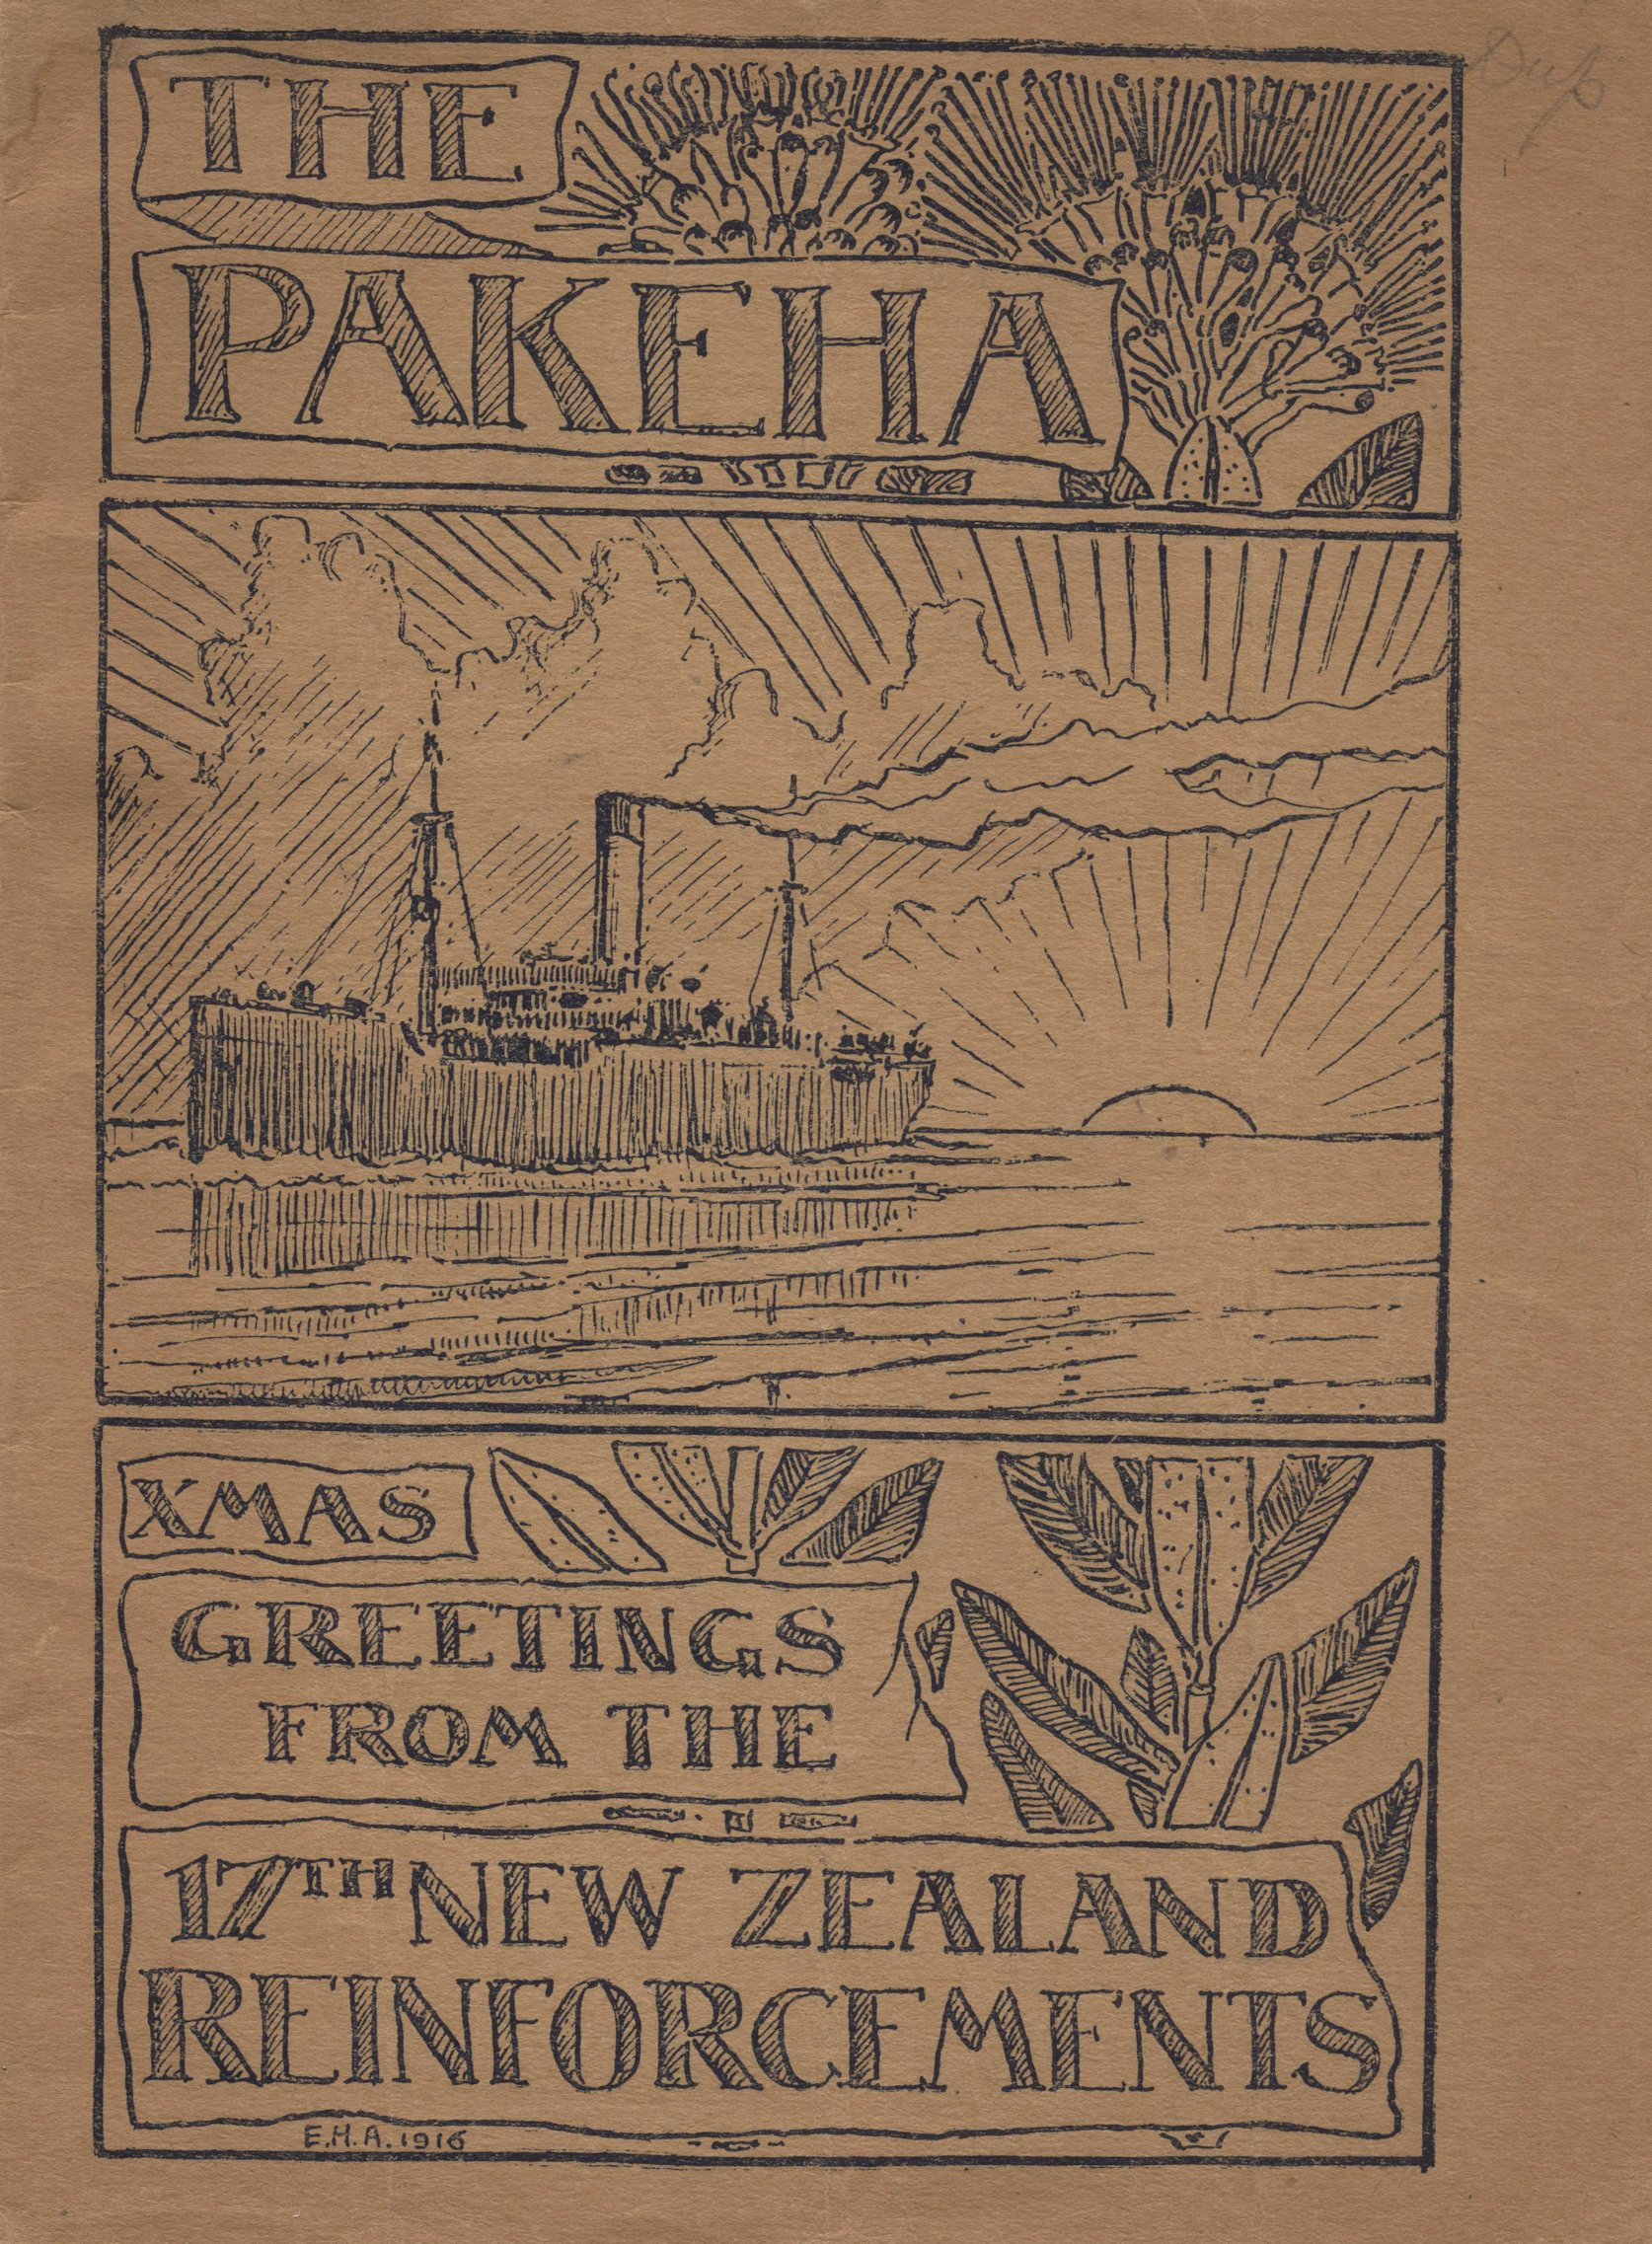 The Pakeha: Christmas Greetings from the 17th New Zealand Reinforcements.